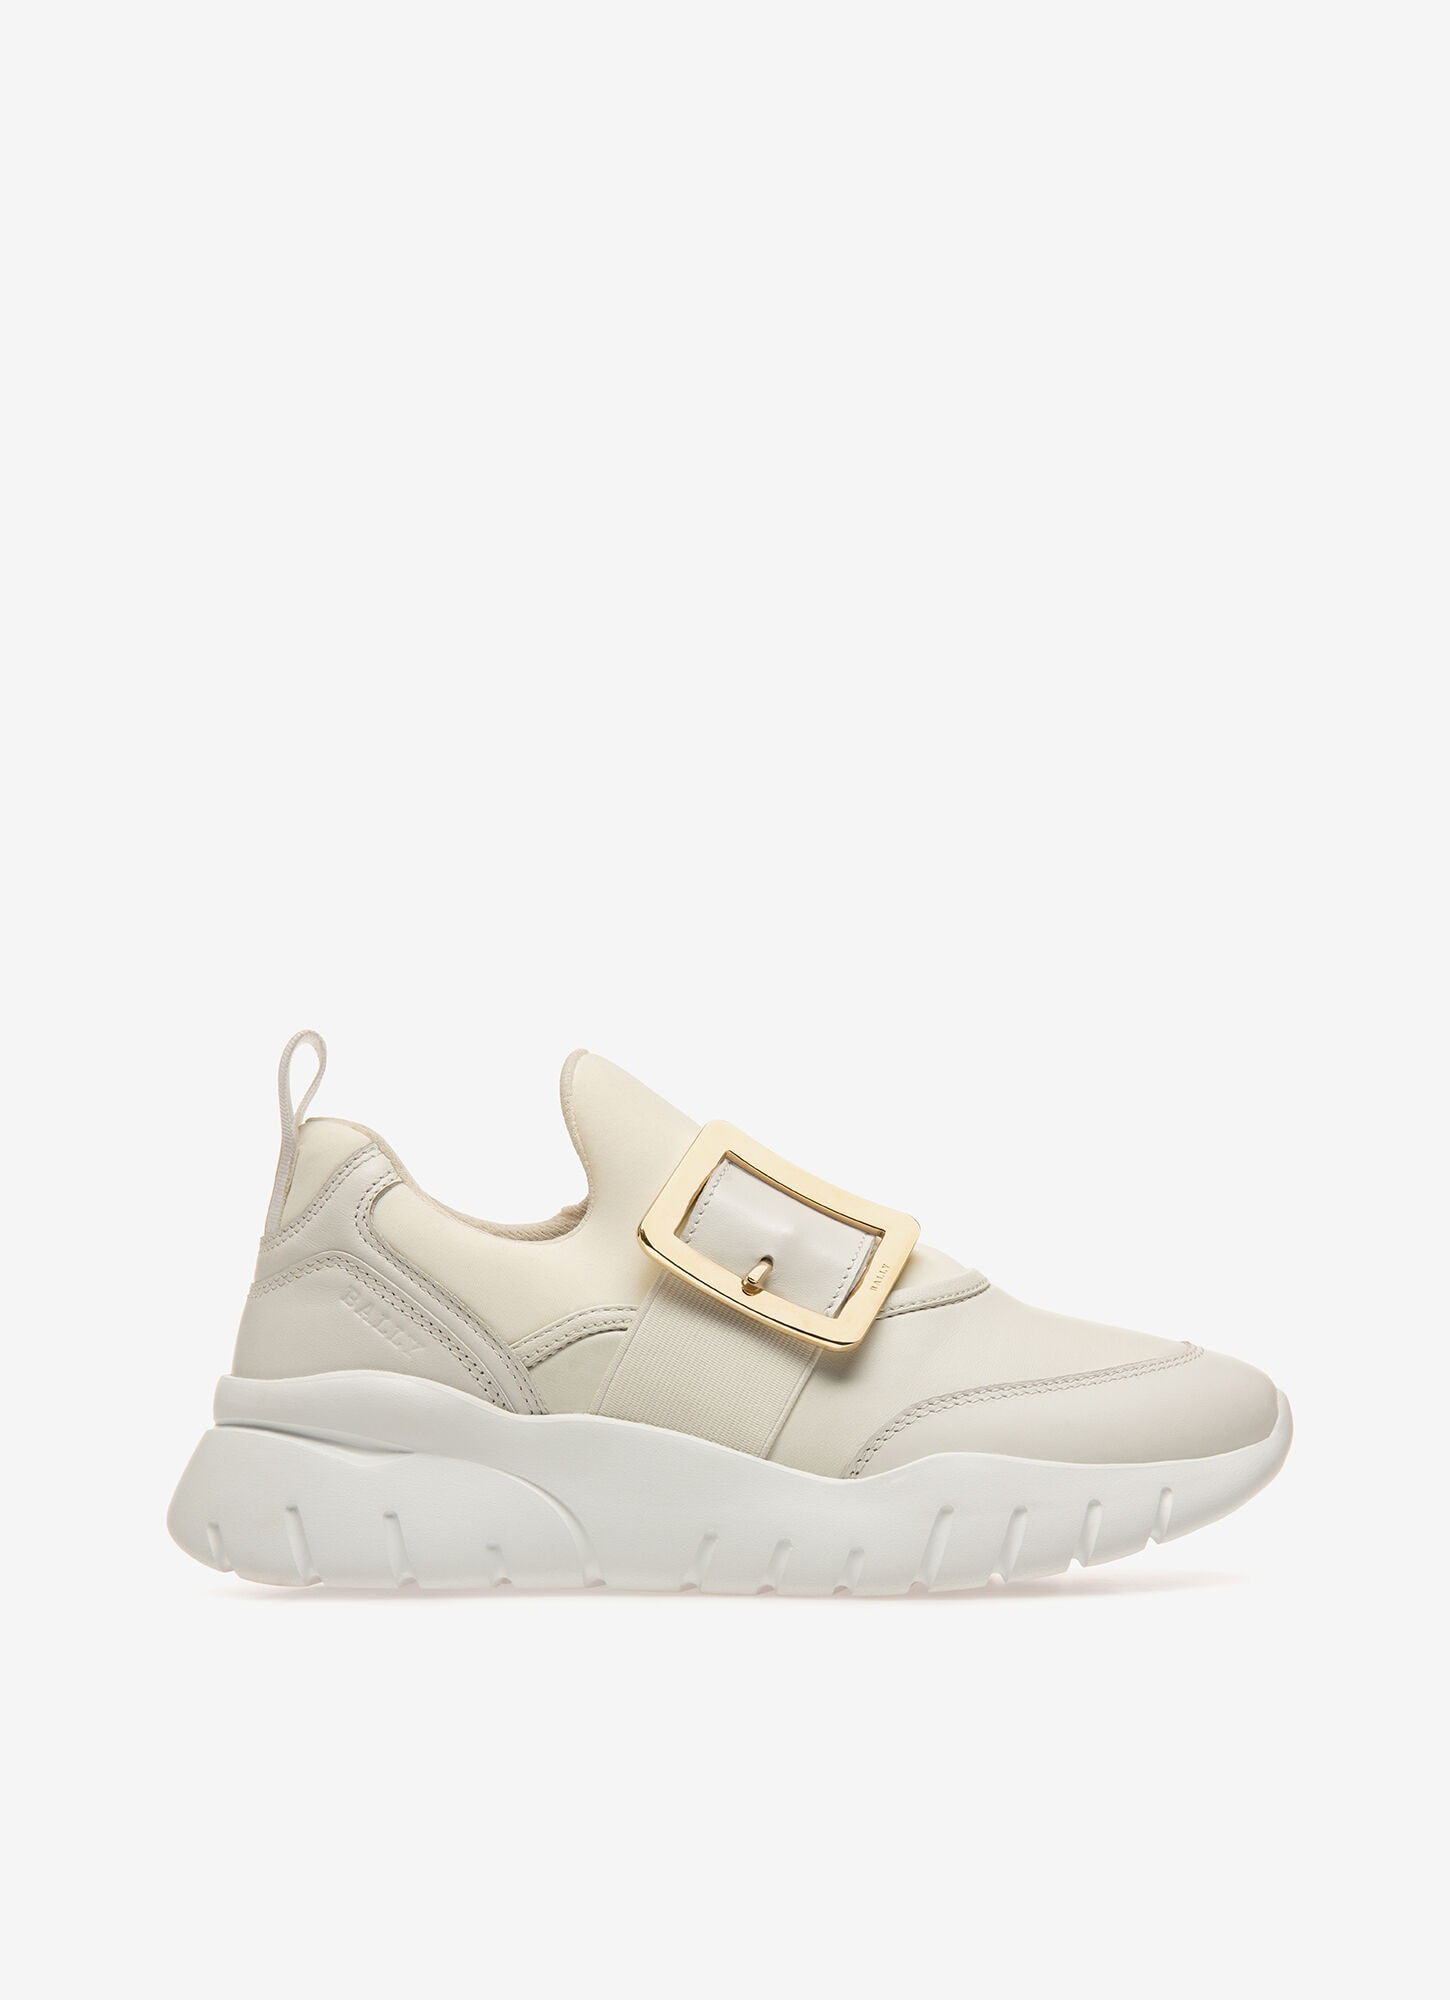 Brinelle| Womens Sneakers | White